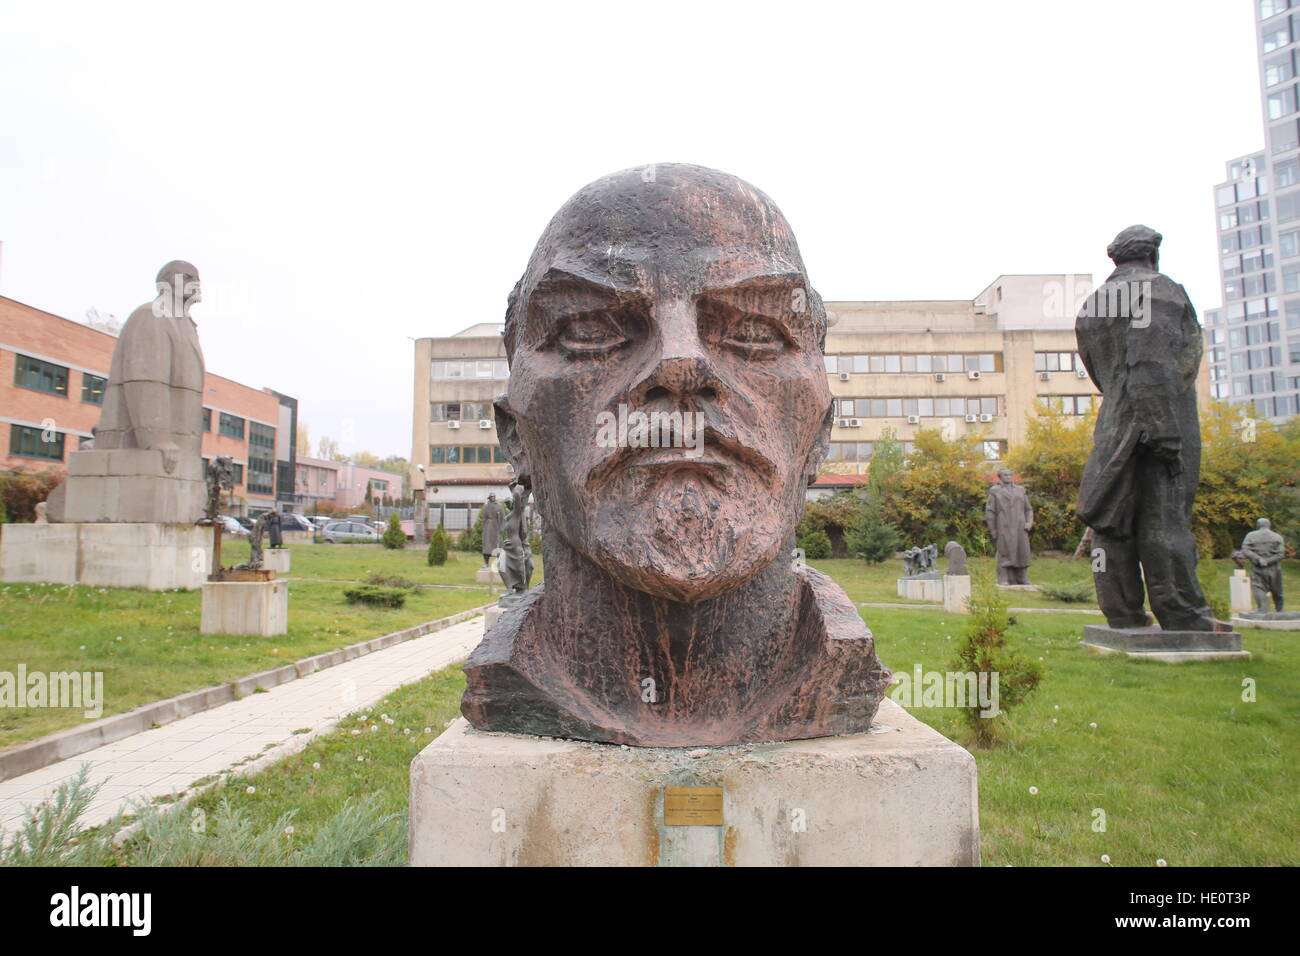 Lenine's statue at the Museum of Socialist Art, Sofia, Bulgaria - Stock Image